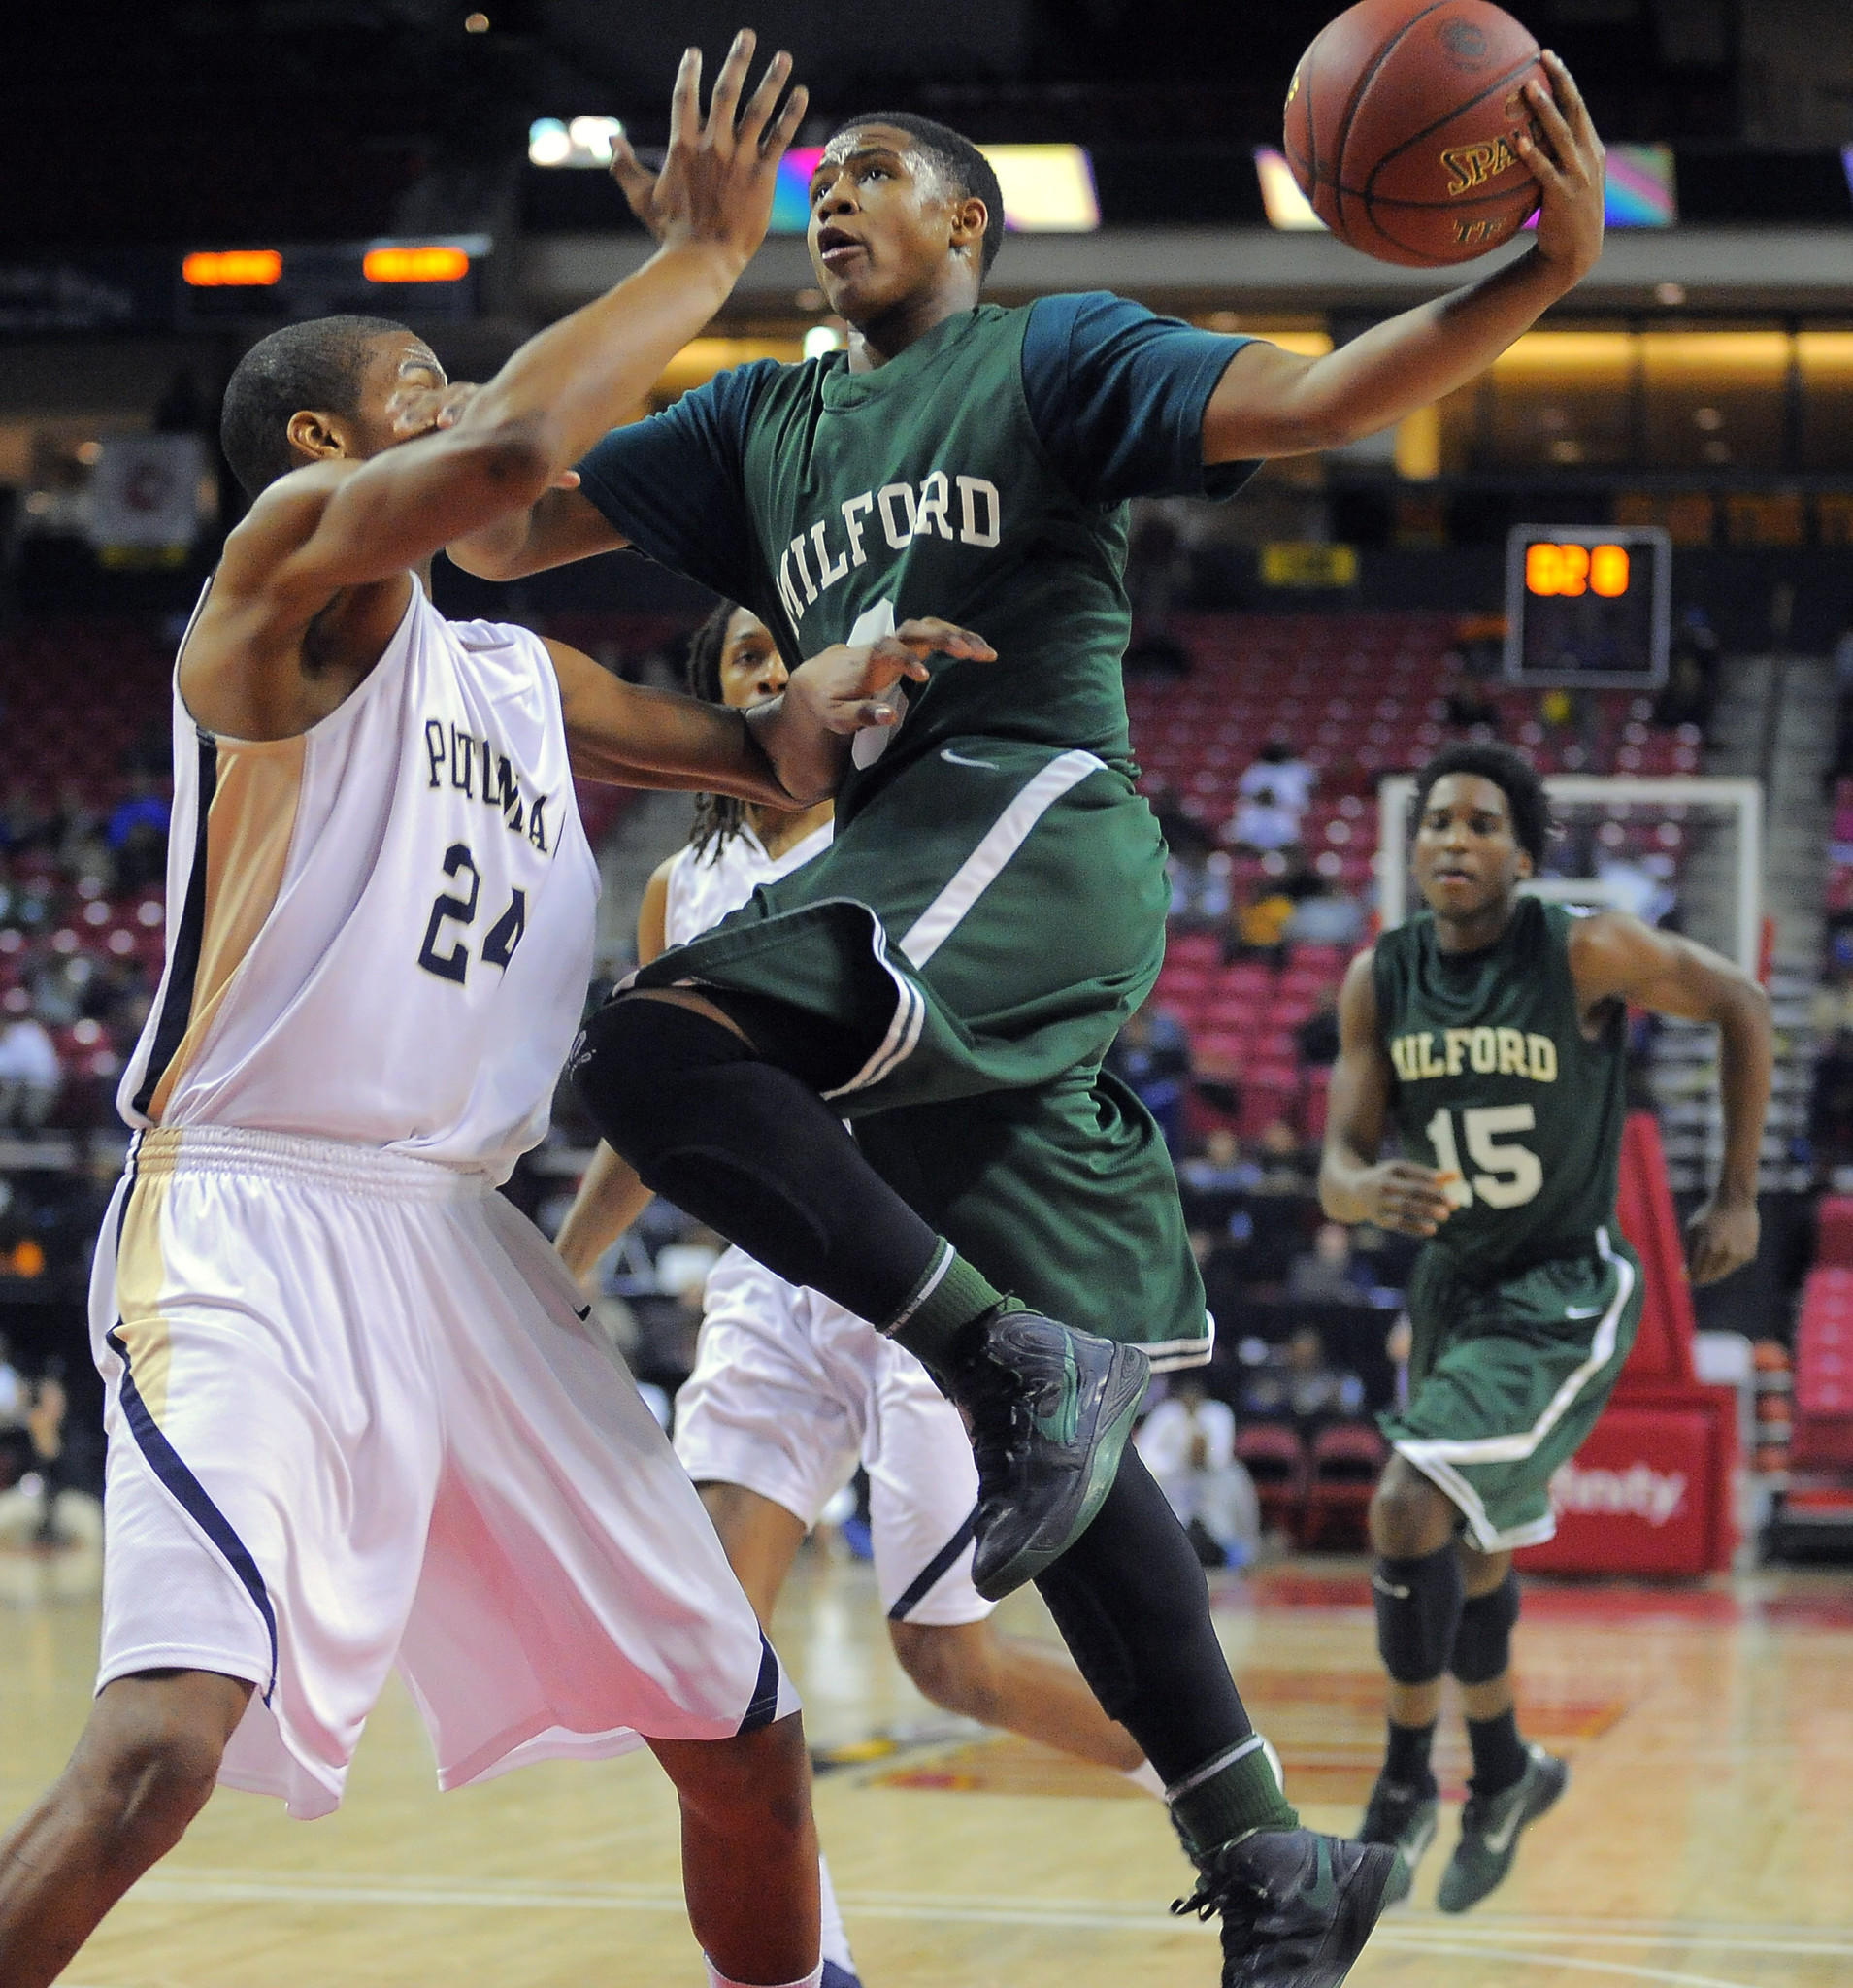 Milford Mill guard Justin Jenifer is fouled by Potomac forward Anthony Smith in the 2013 Class 3A championship game won by the Millers, 84-55.